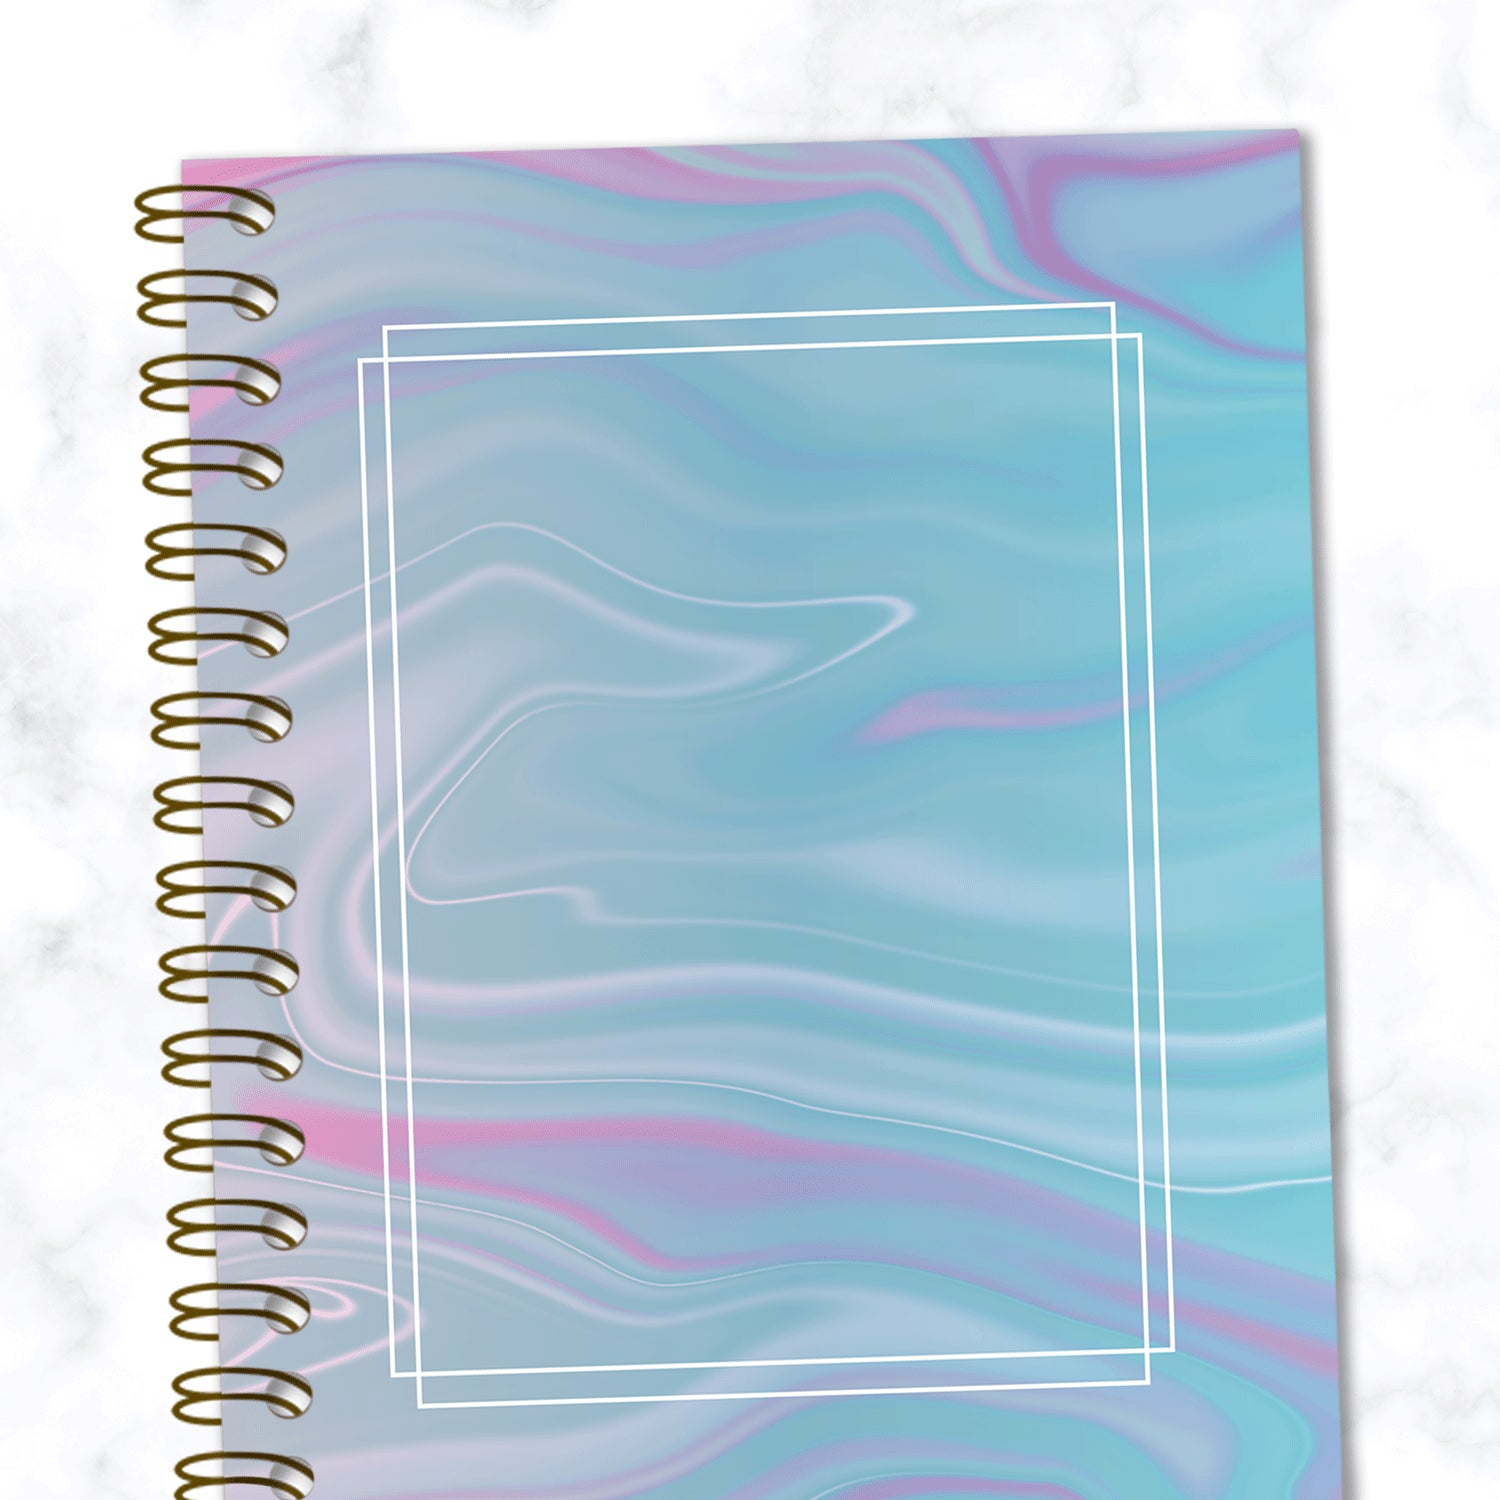 Blue and Pink Abstract Marbled Dot Grid Spiral Notebook - Close up View